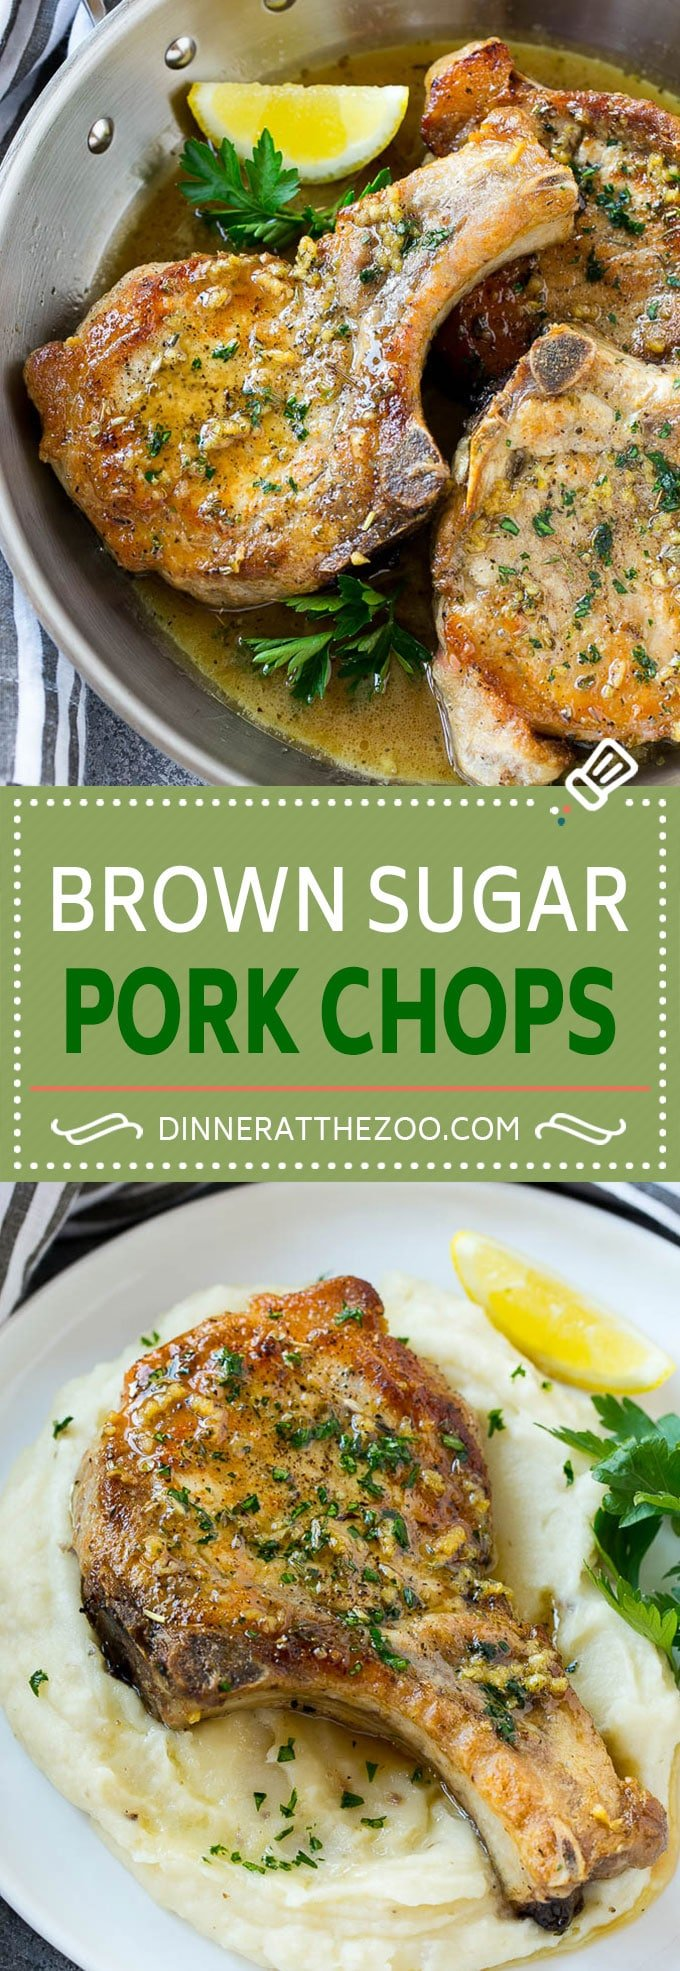 Brown Sugar Pork Chops Recipe | Bone In Pork Chops Recipe | Garlic Butter Pork Chops | Skillet Pork Chops